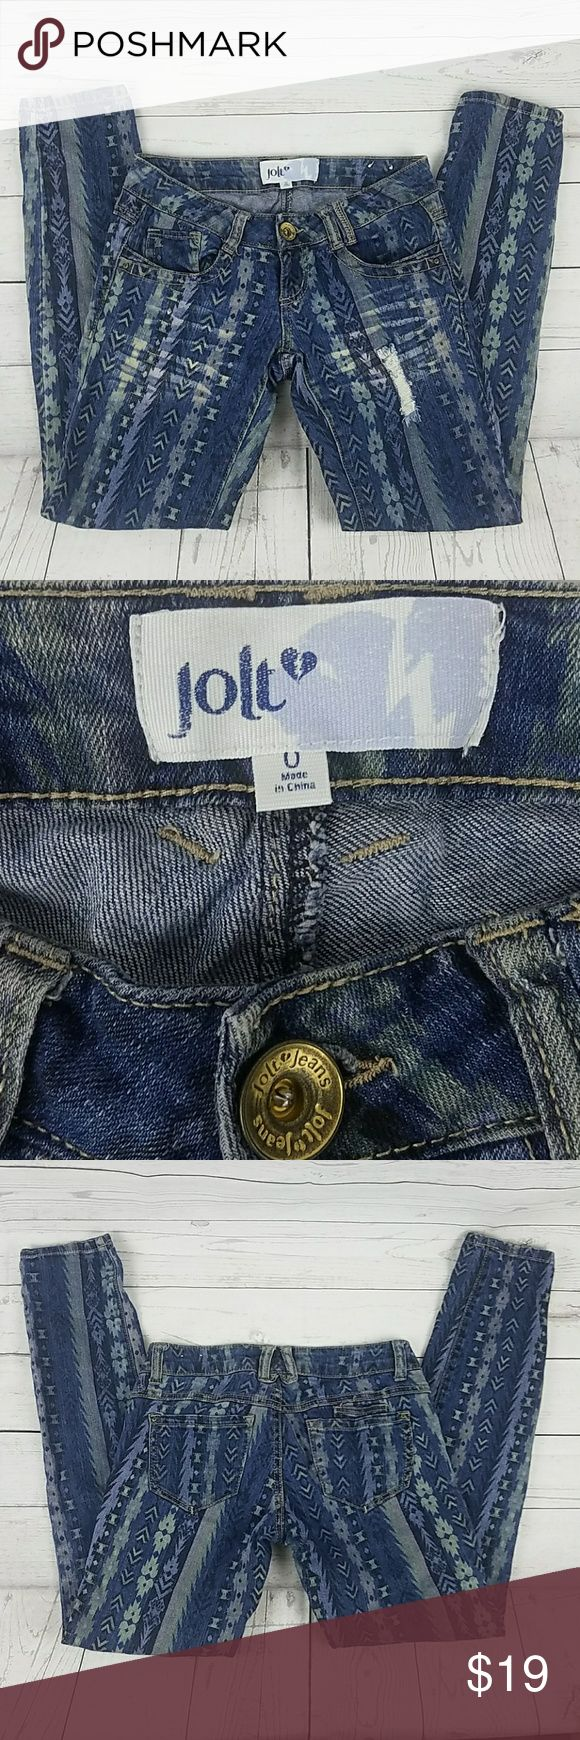 Jolt Jean's Skinny Size 0 Women's Jolt Jean's are in good condition. Gently used. Skinny Size 0 Inseam 28 Rise 6 inches  Waist 13 1/2 Jolt Jeans Skinny